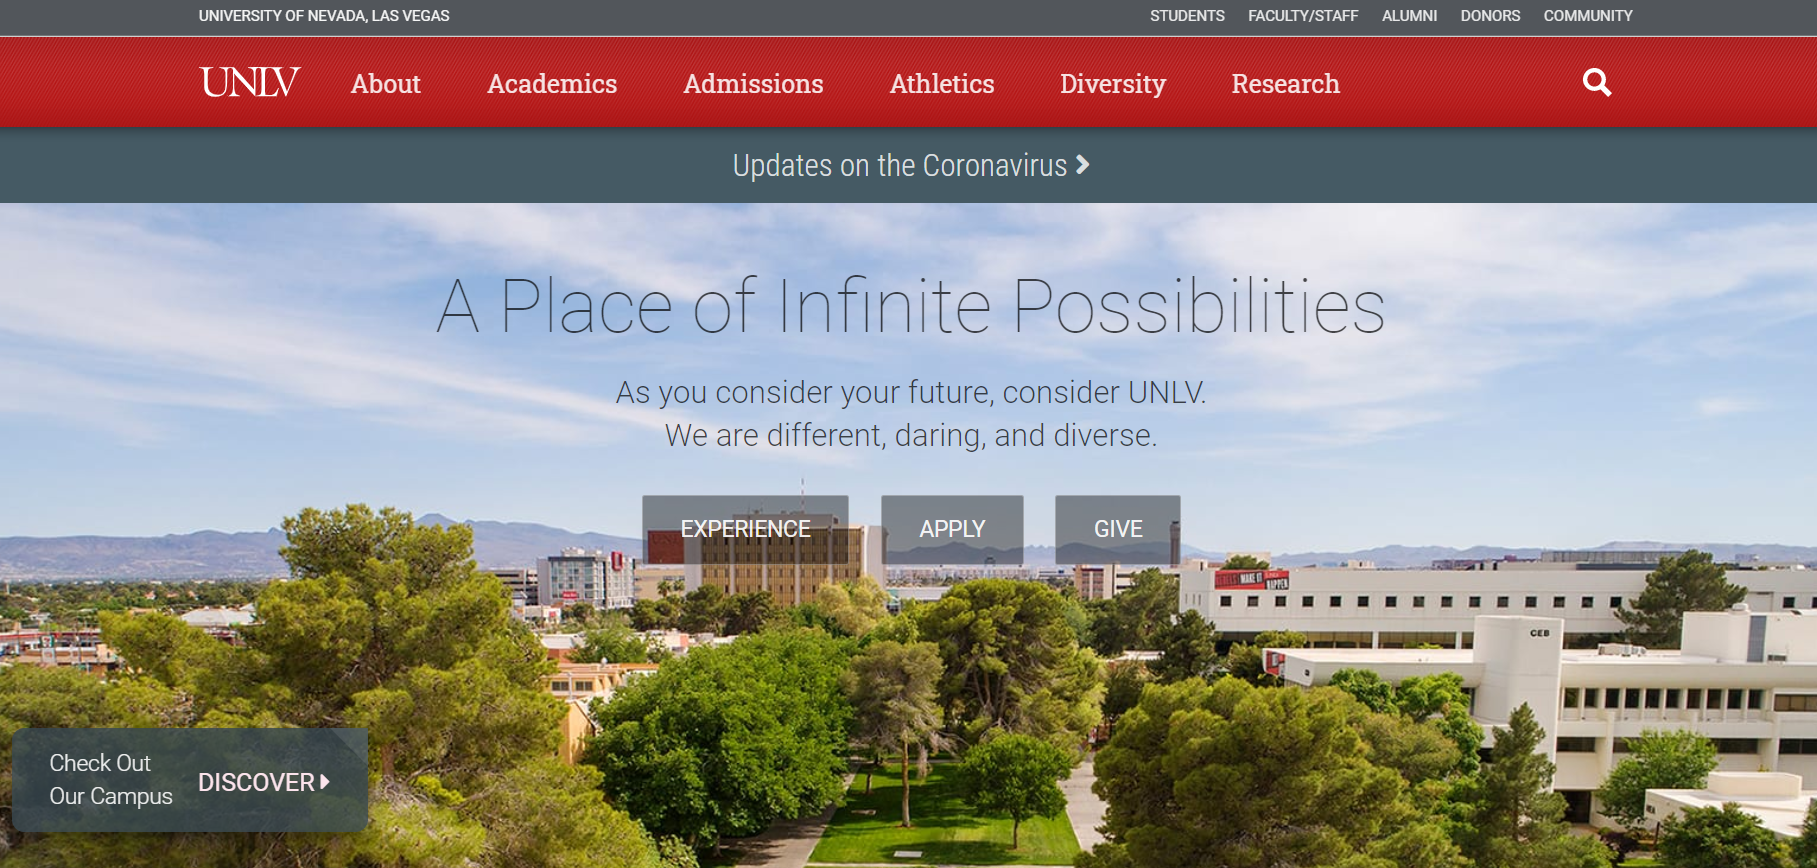 University of Nevada, Las Vegas is looking for a Senior Web Developer, for Web and Digital Strategy ($40k – $80k)